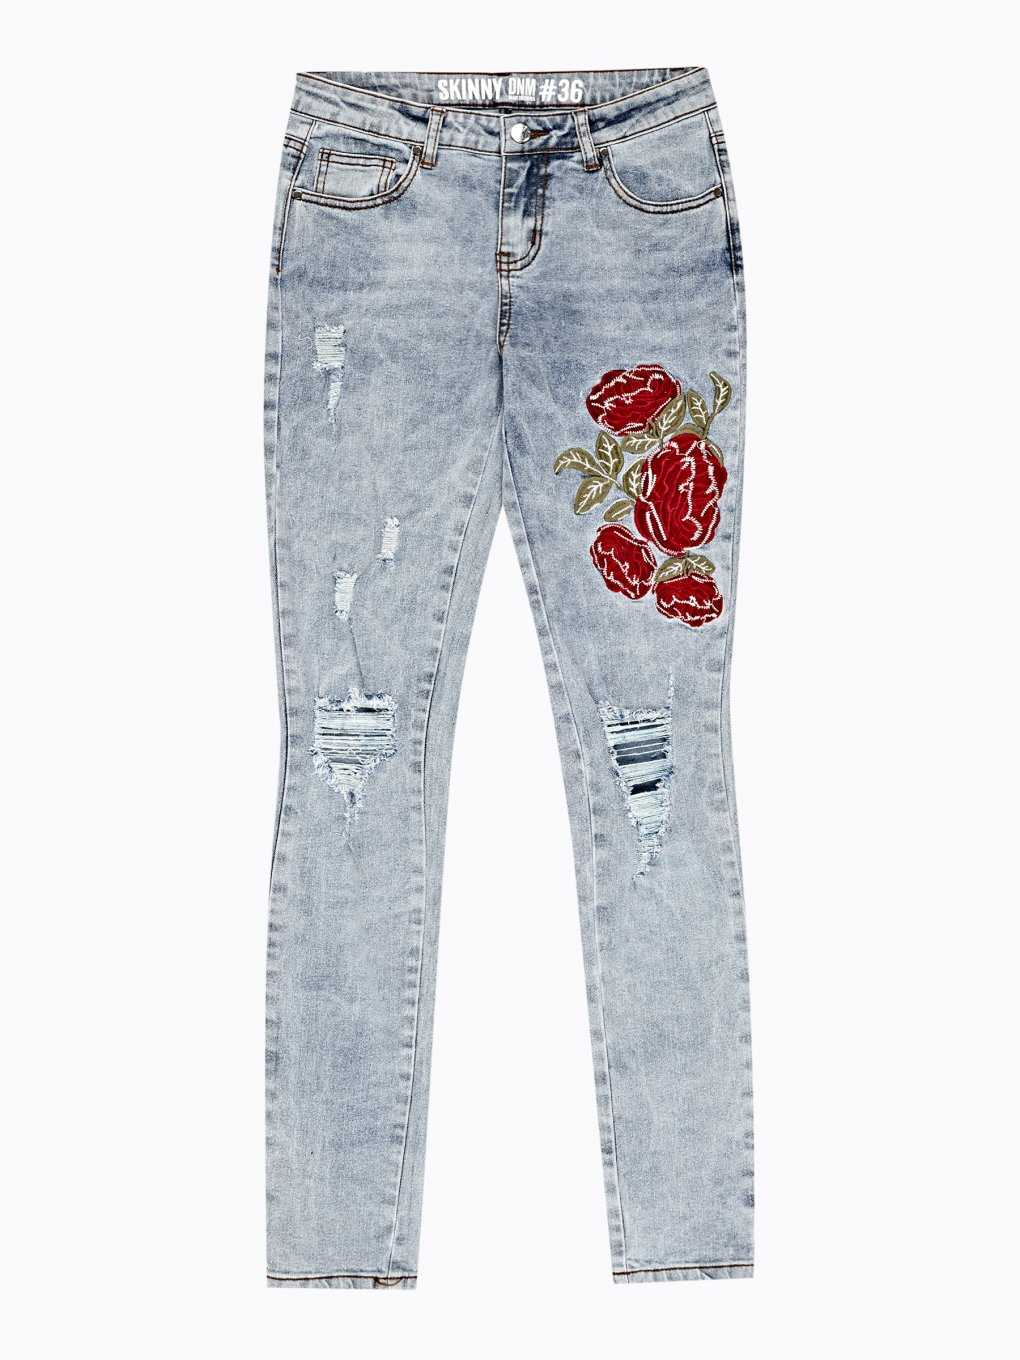 Damaged skinny jeans with floral embroidery